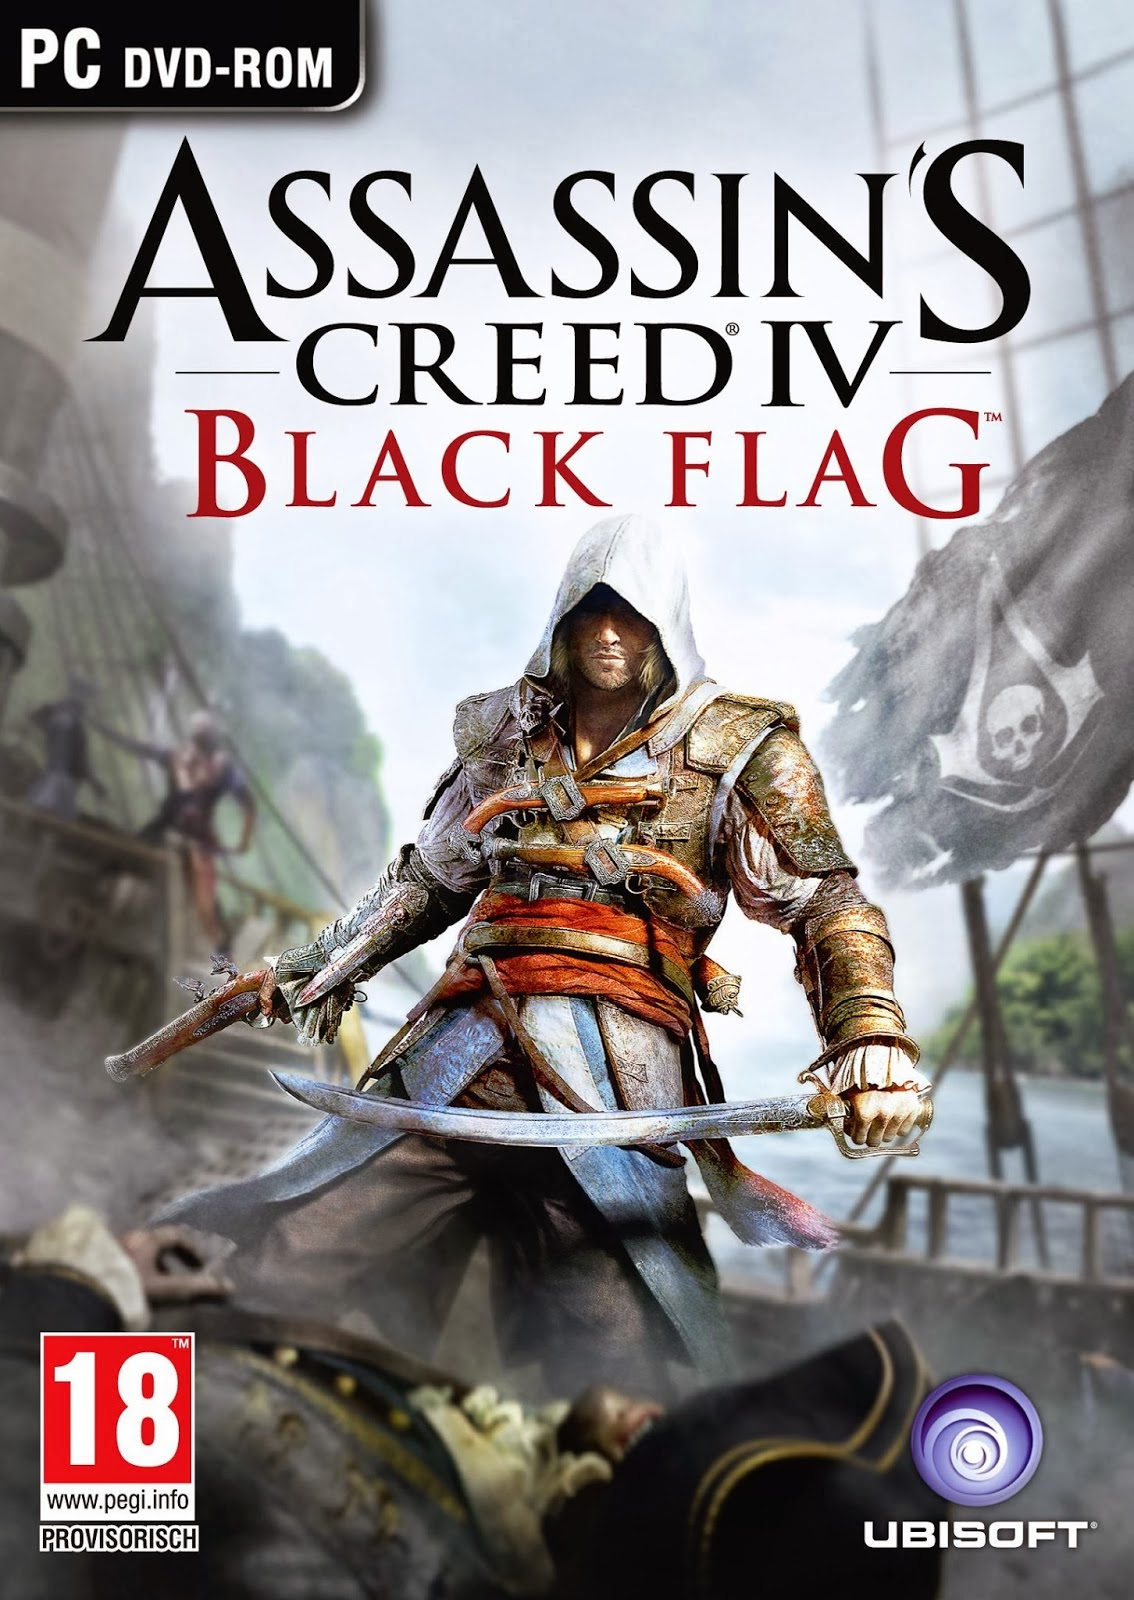 ASSASSINS2 Download   Jogo Assassins Creed IV Black Flag RELOADED   PC (2013)